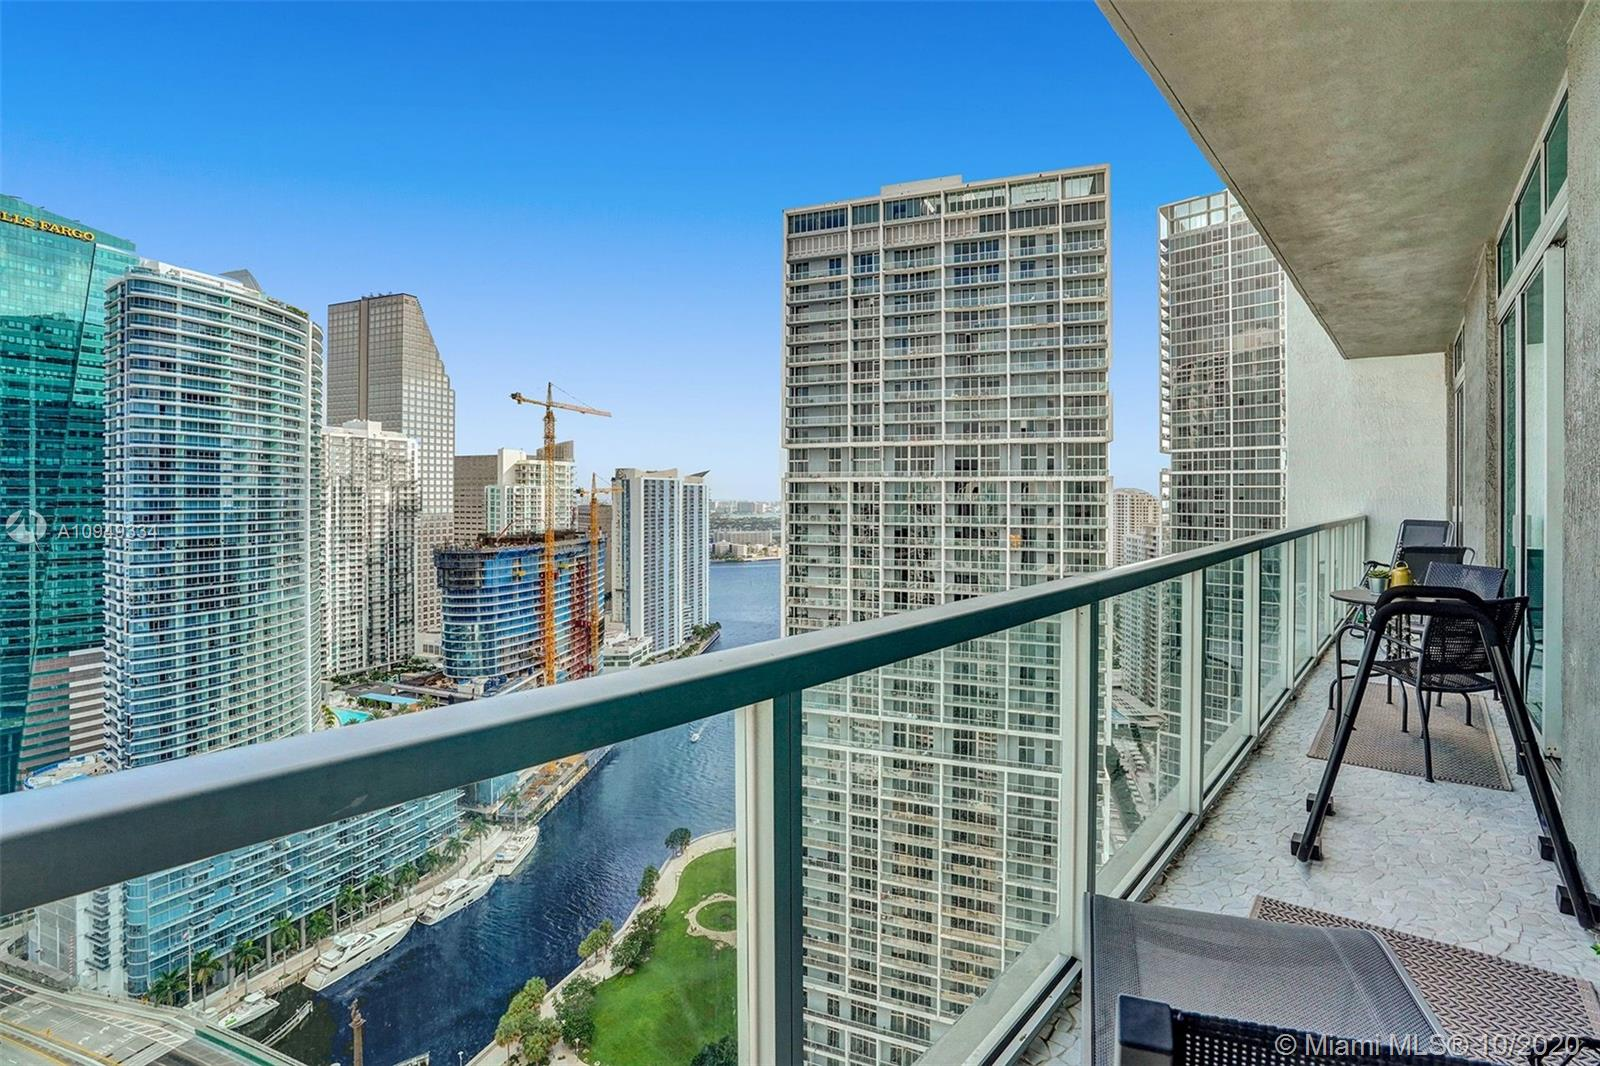 500 Brickell West Tower #LPH-05 - 500 Brickell Ave #LPH-05, Miami, FL 33131